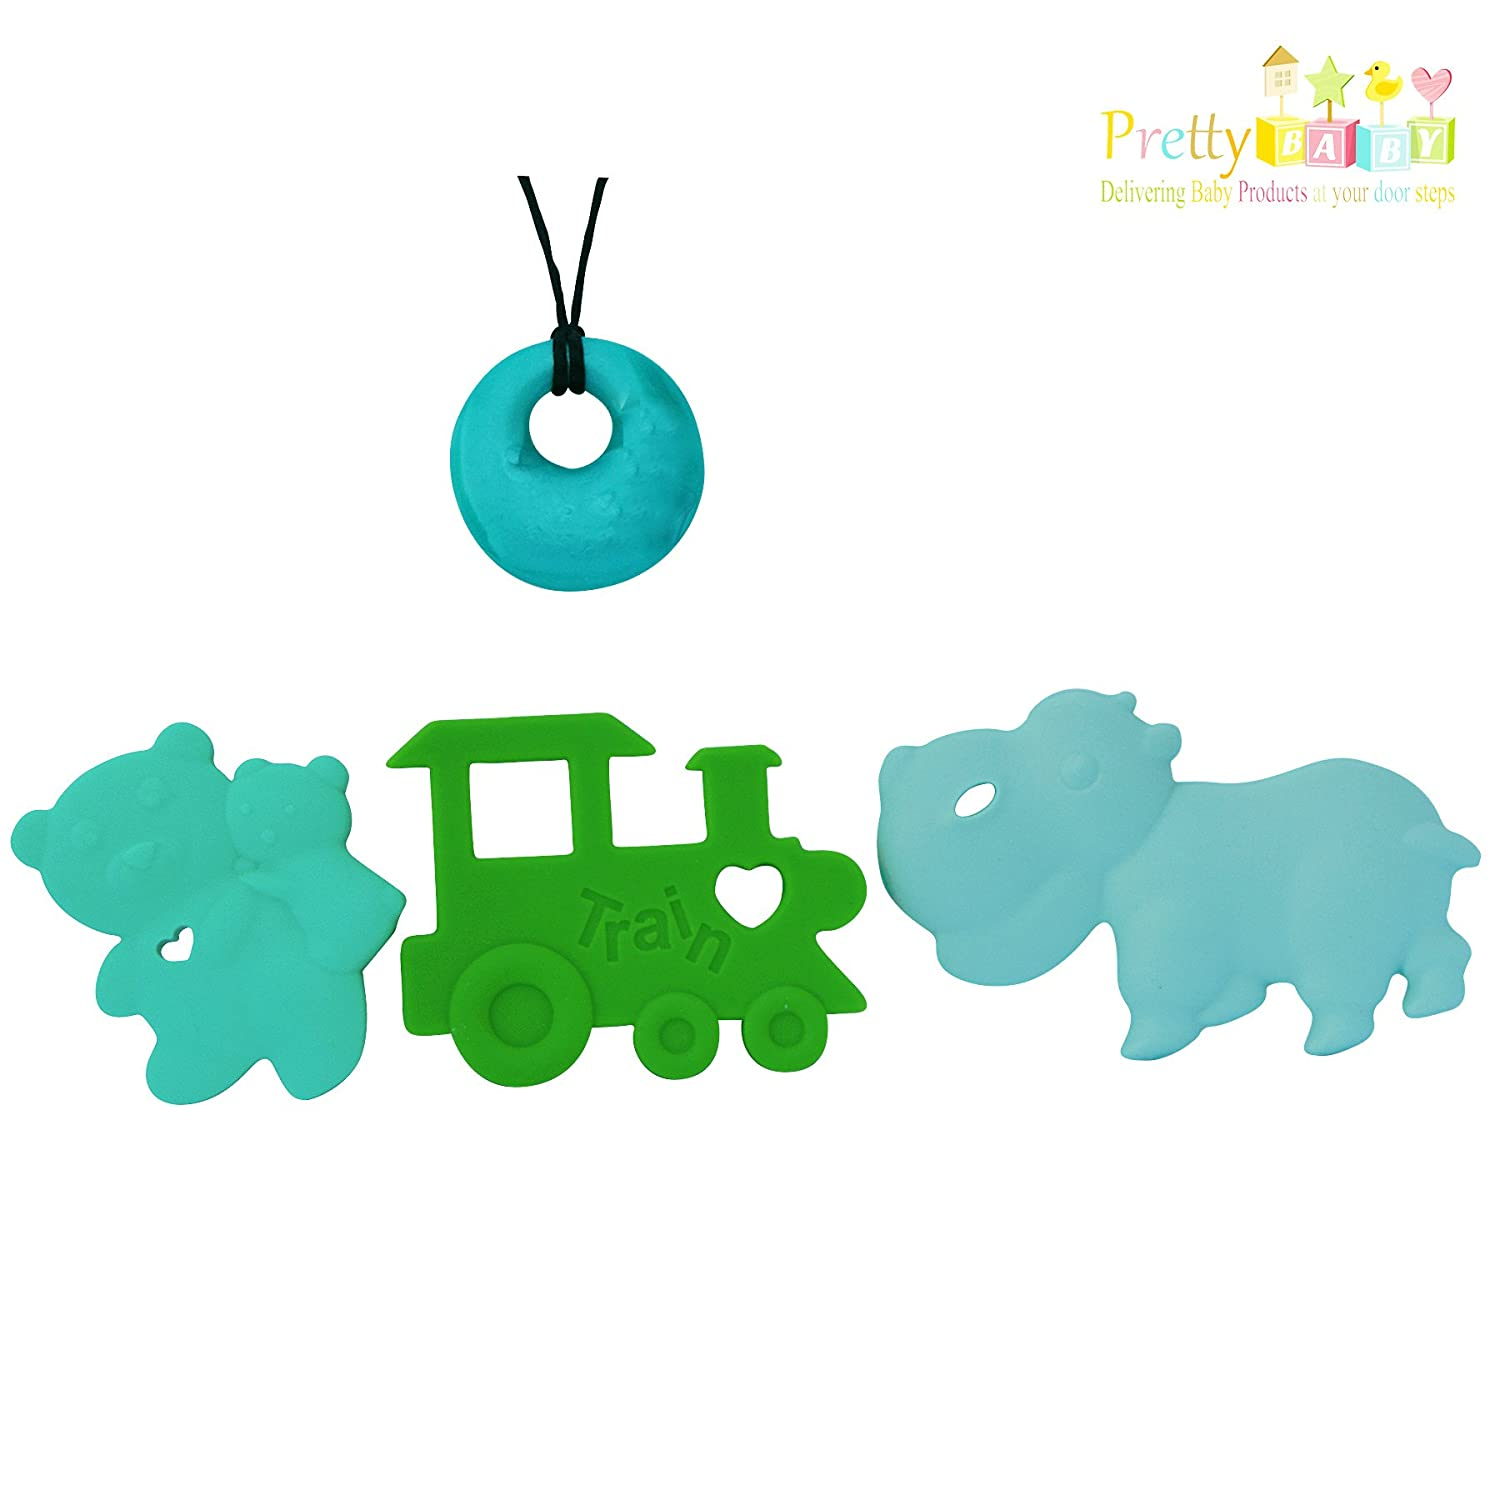 Bonus Teething Necklace FREE Soft Chewy Teethers For Baby Shower Gifts Baby Gifts Pretty Baby Products Baby Teethers /& Baby Teething Necklace Combo 4 Baby Teether Toys To Reduce Teething Pain /& Inflammation